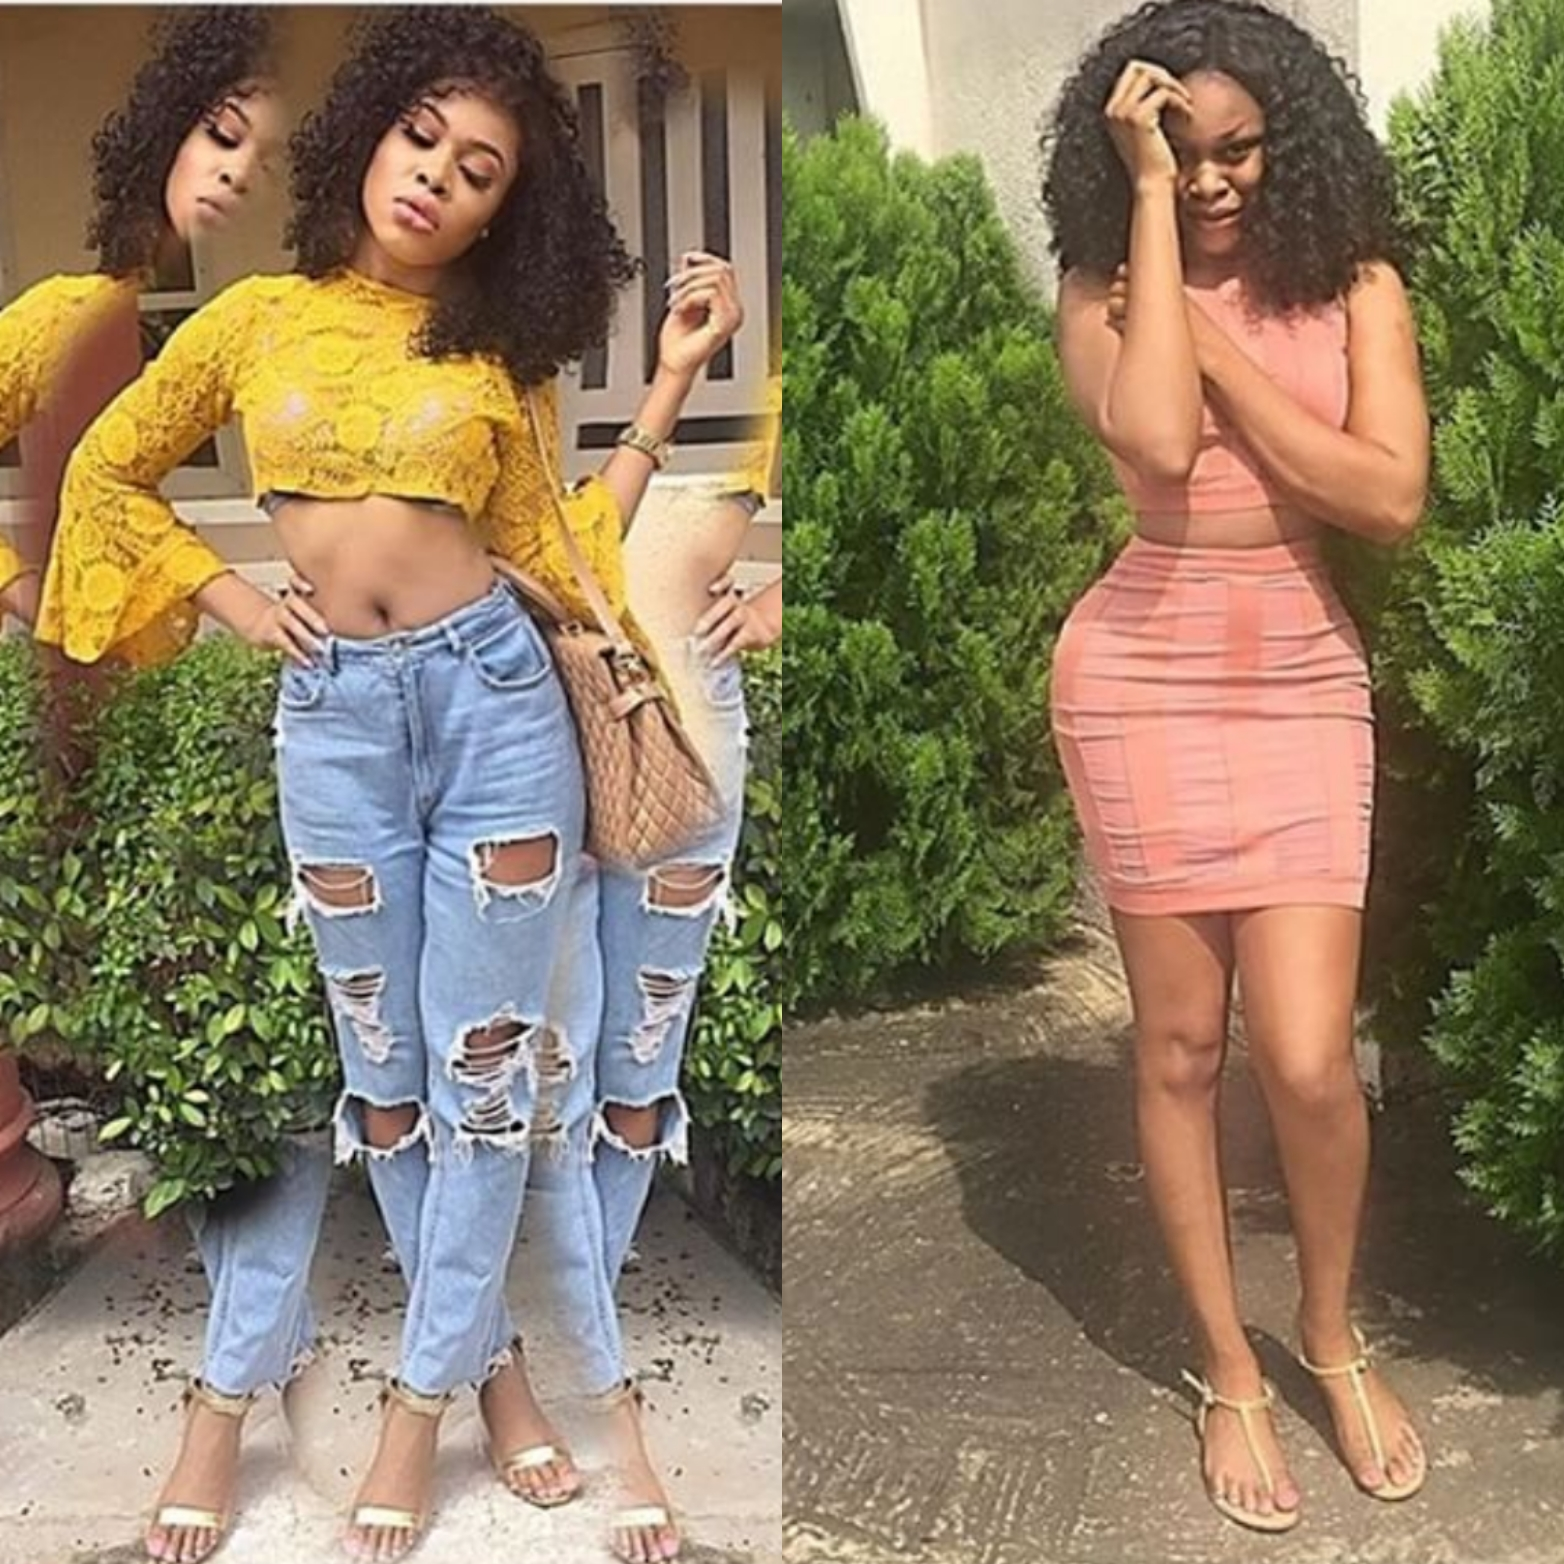 Fans call out ex-BBNaija housemate over miracleous big hips